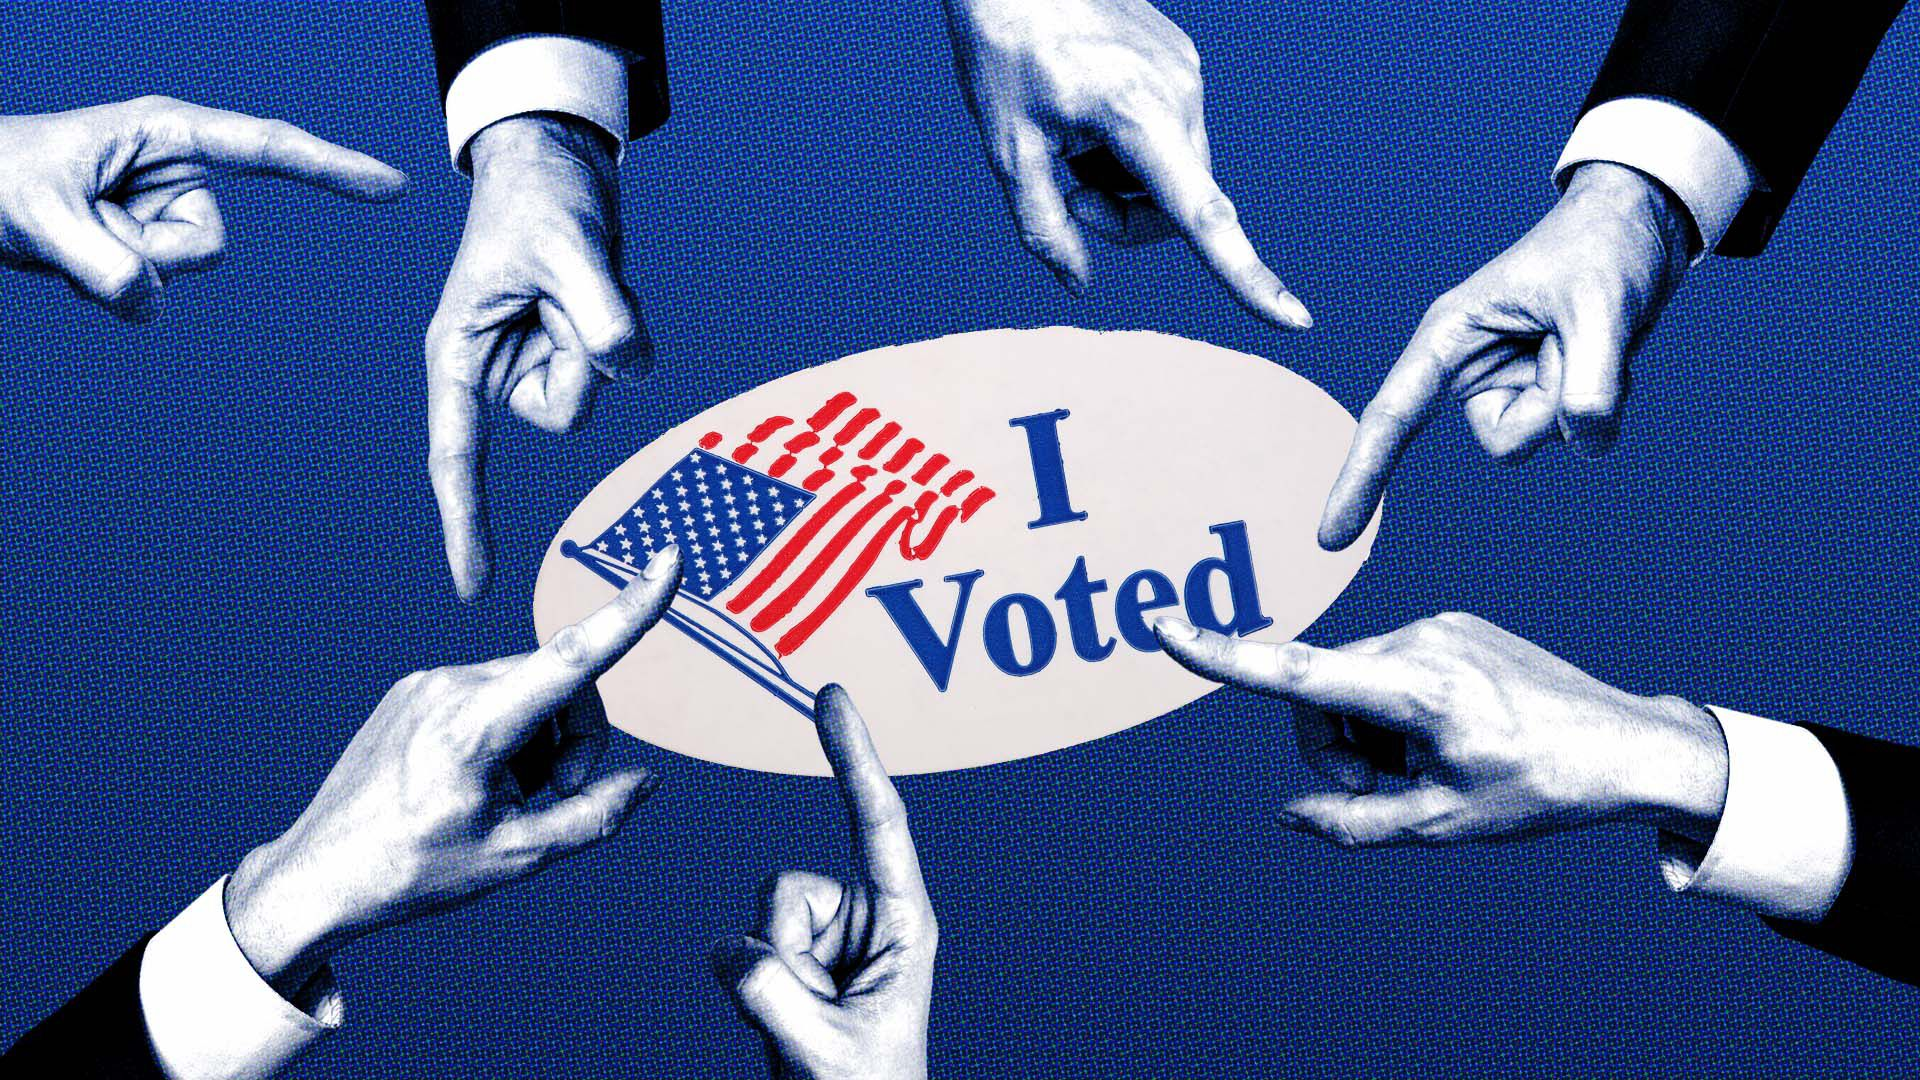 Illustration of an I voted sticker surrounded by fingers pointing in different directions